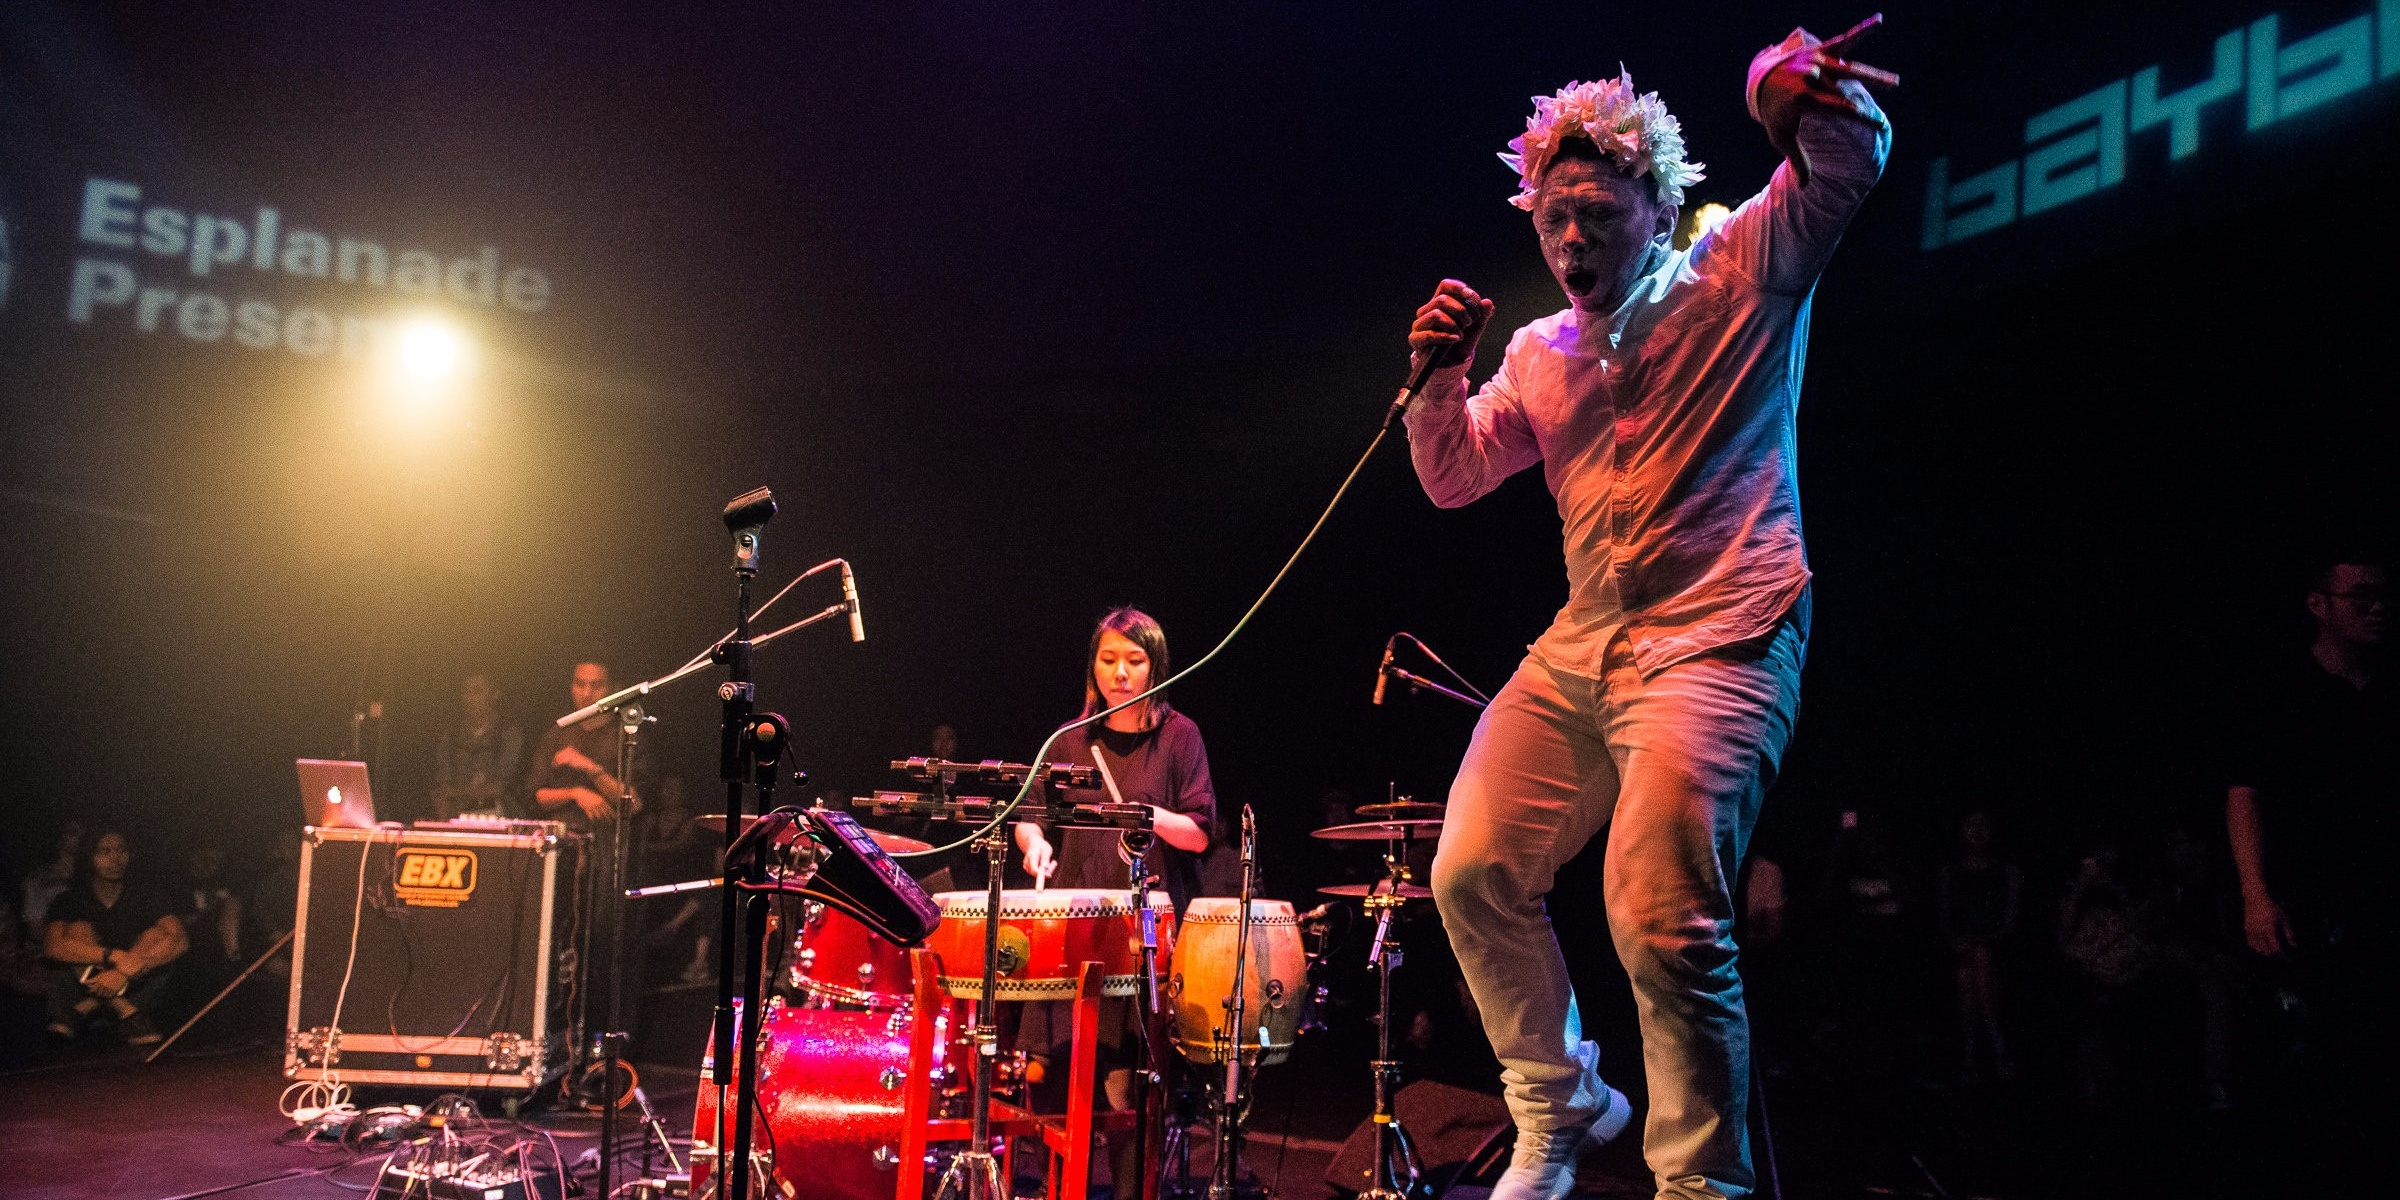 Baybeats 2017 delivers yet another sensational weekend of local and regional alternative music — photo gallery